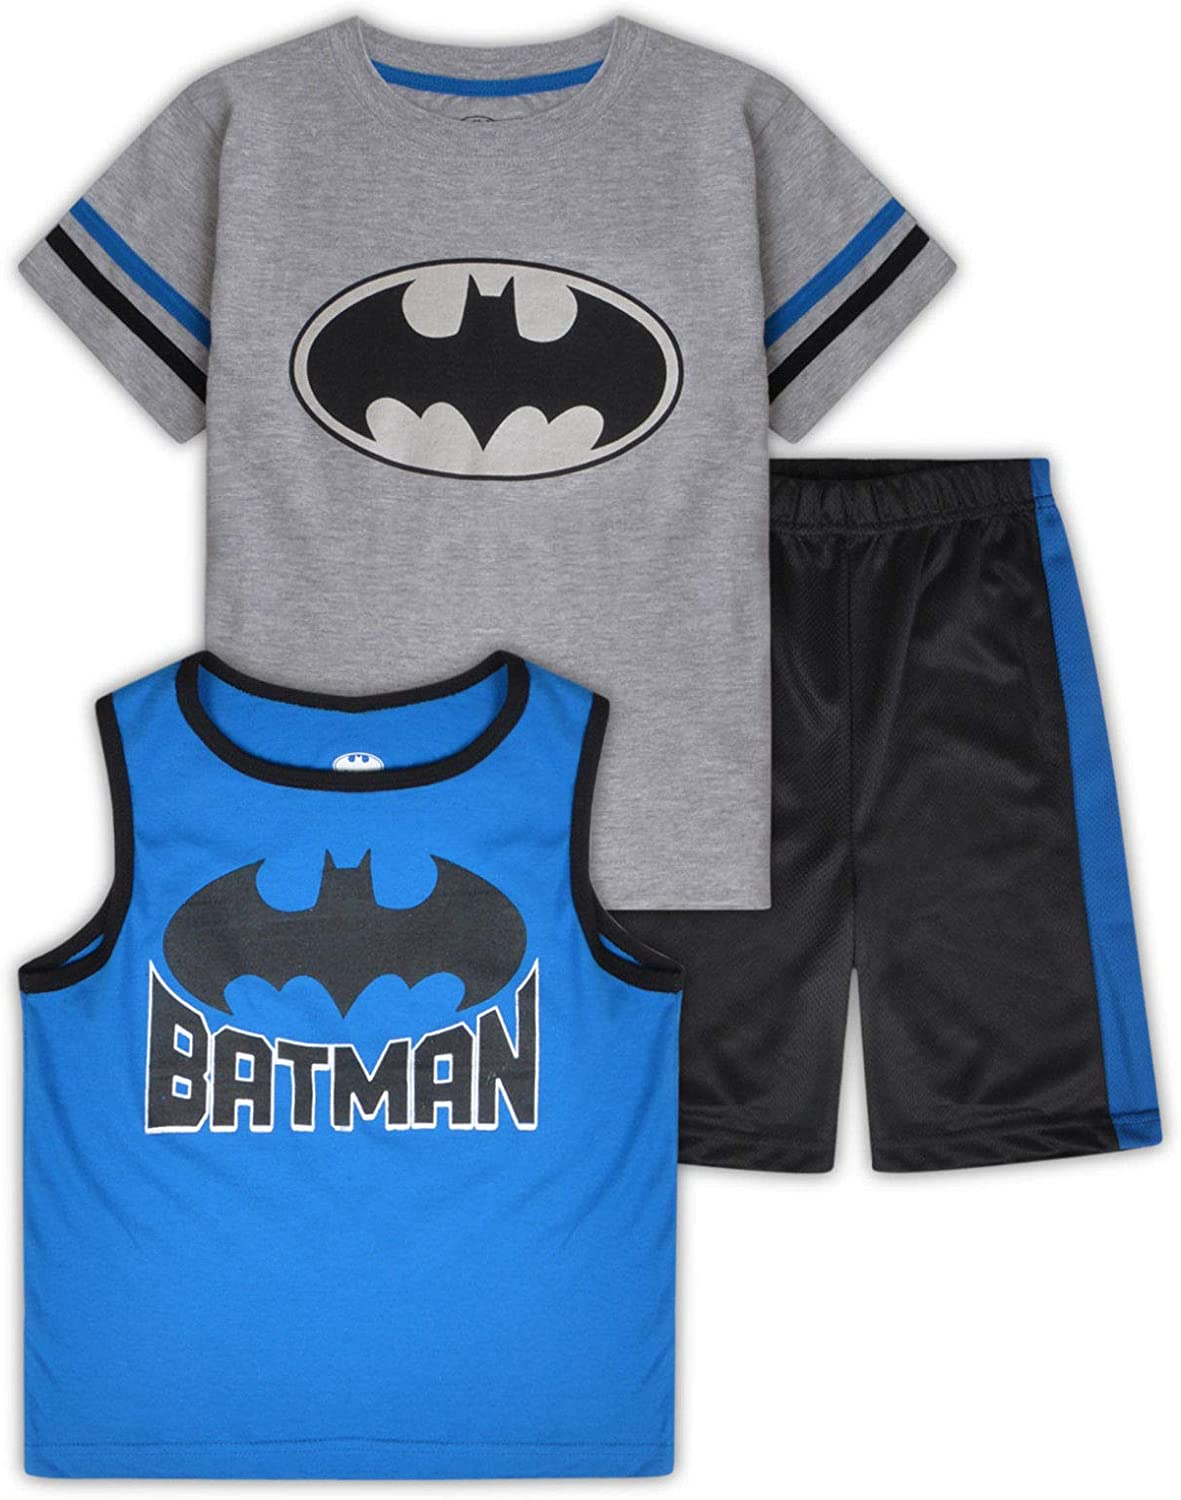 Boys Character Short T Shirt Vest 3PC Outfit Set 1-7 Years EX Store